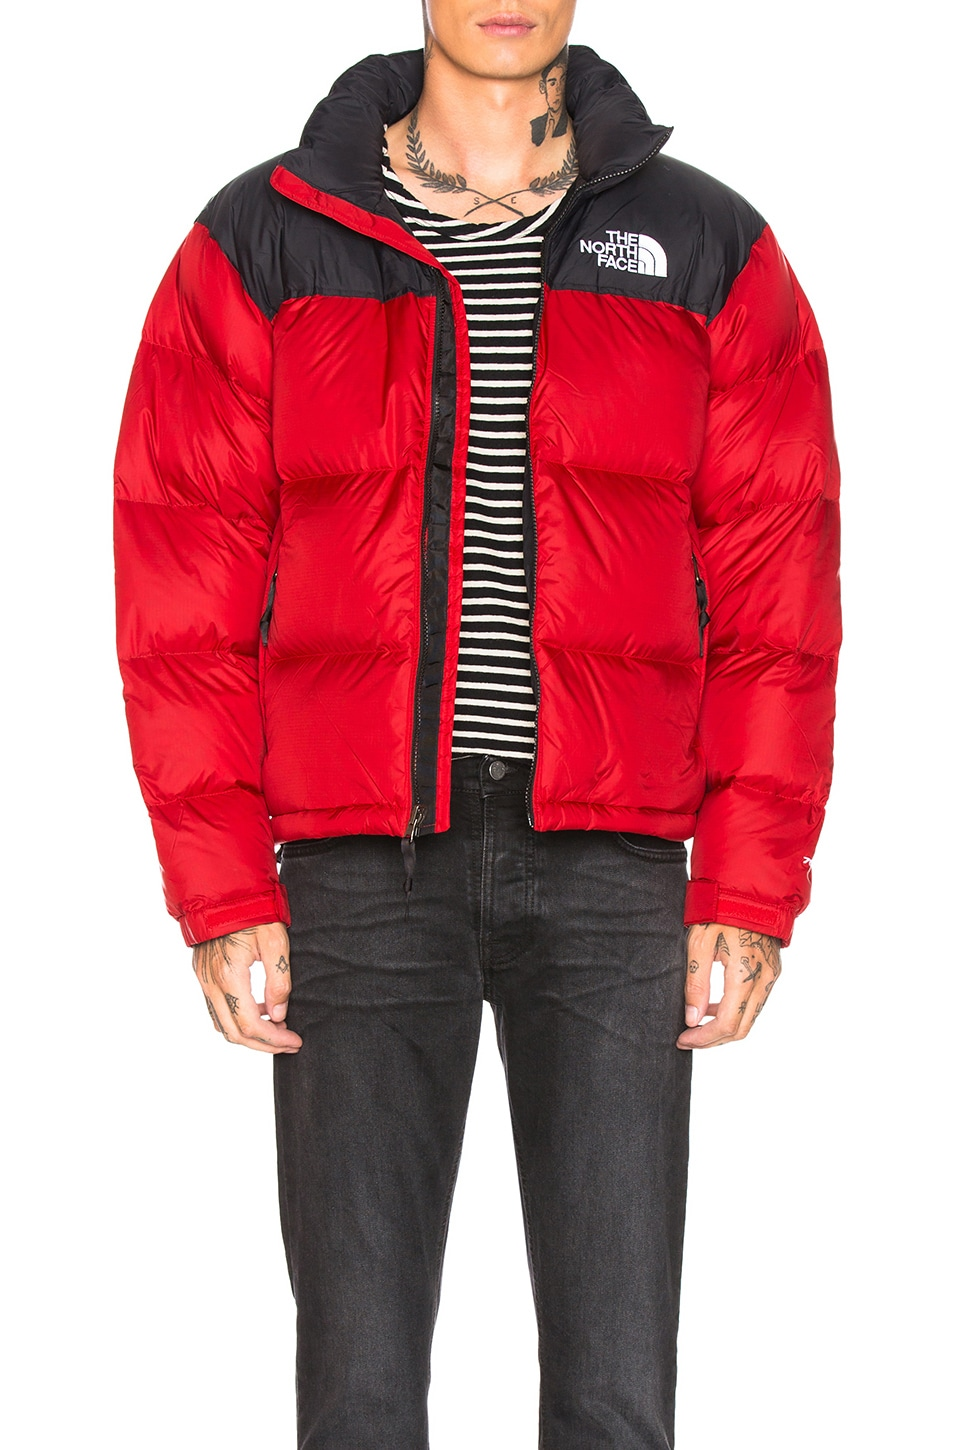 The North Face 1996 Retro Nuptse Jacket in TNF Red